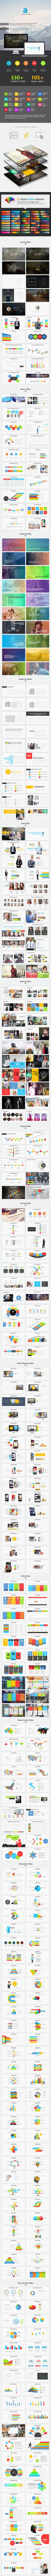 A Template Power Point Presentation - Business PowerPoint Templates